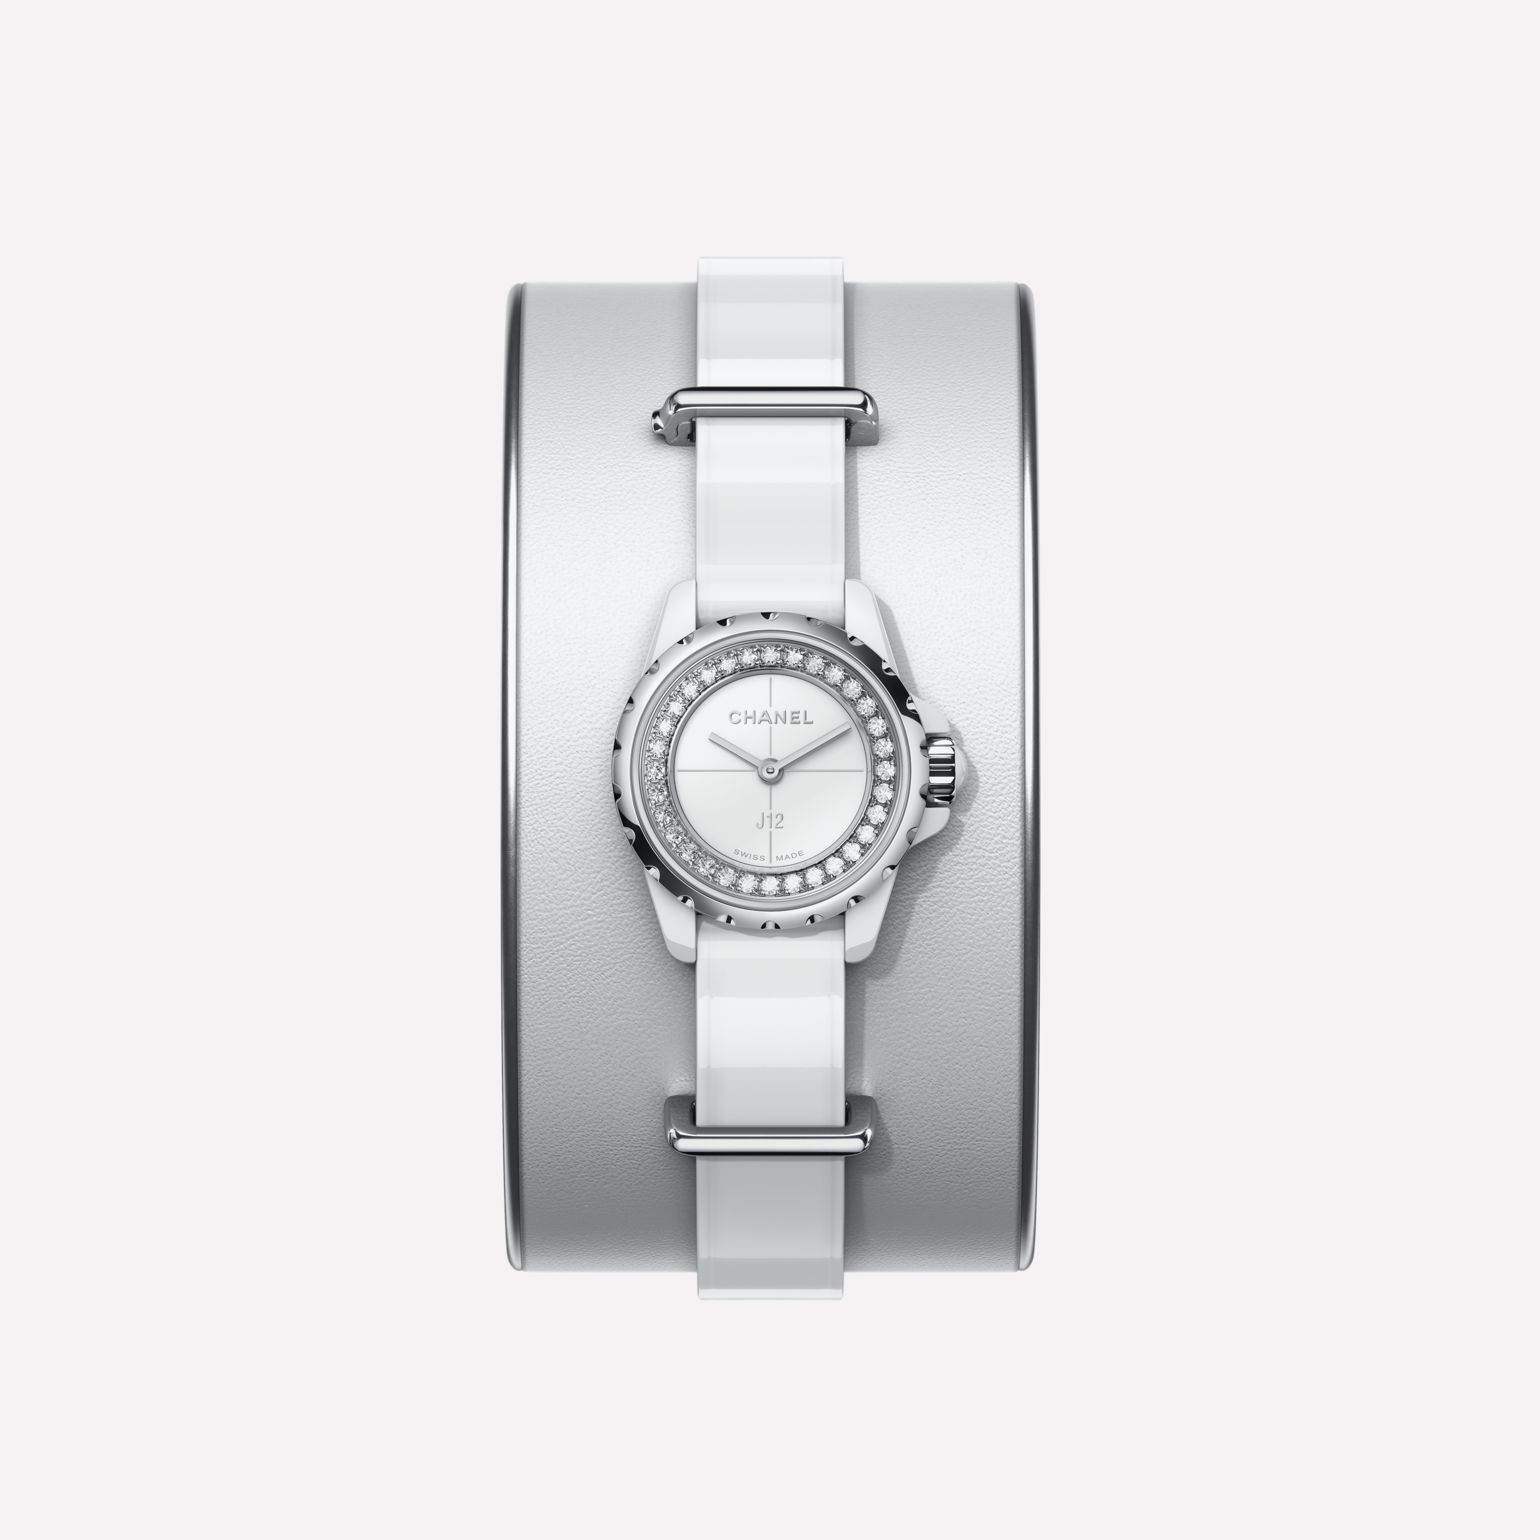 J12·XS Watch Small white leather cuff, white highly resistant ceramic and steel, brilliant-cut diamond flange